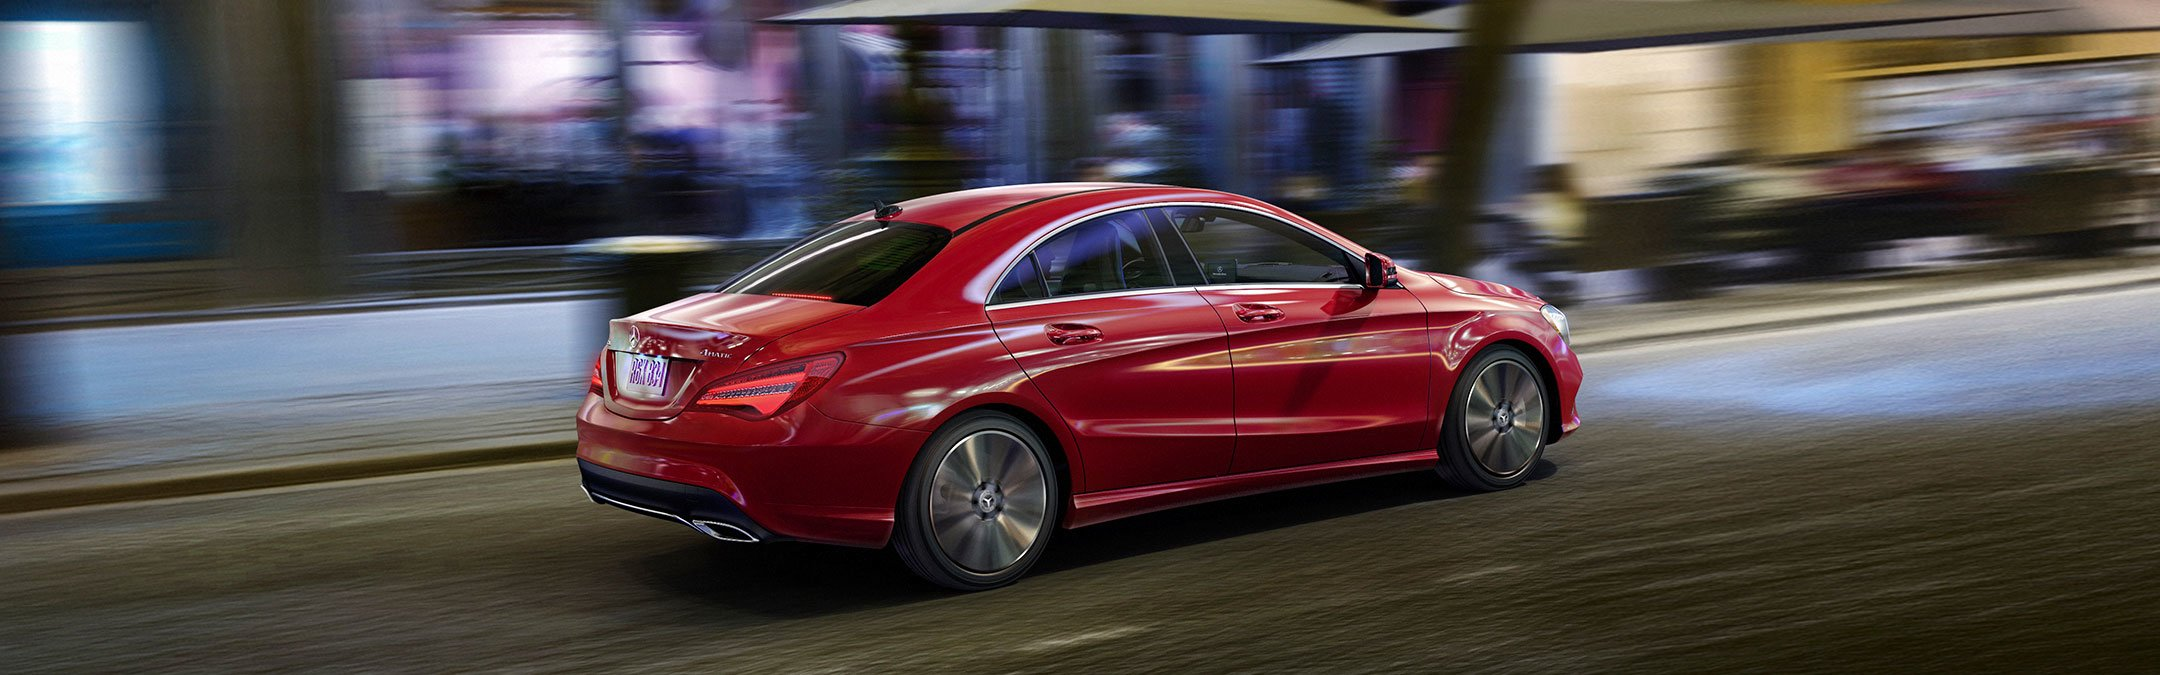 New Mercedes Benz Cla Lease And Finance Offers Doylestown Pa For Sale